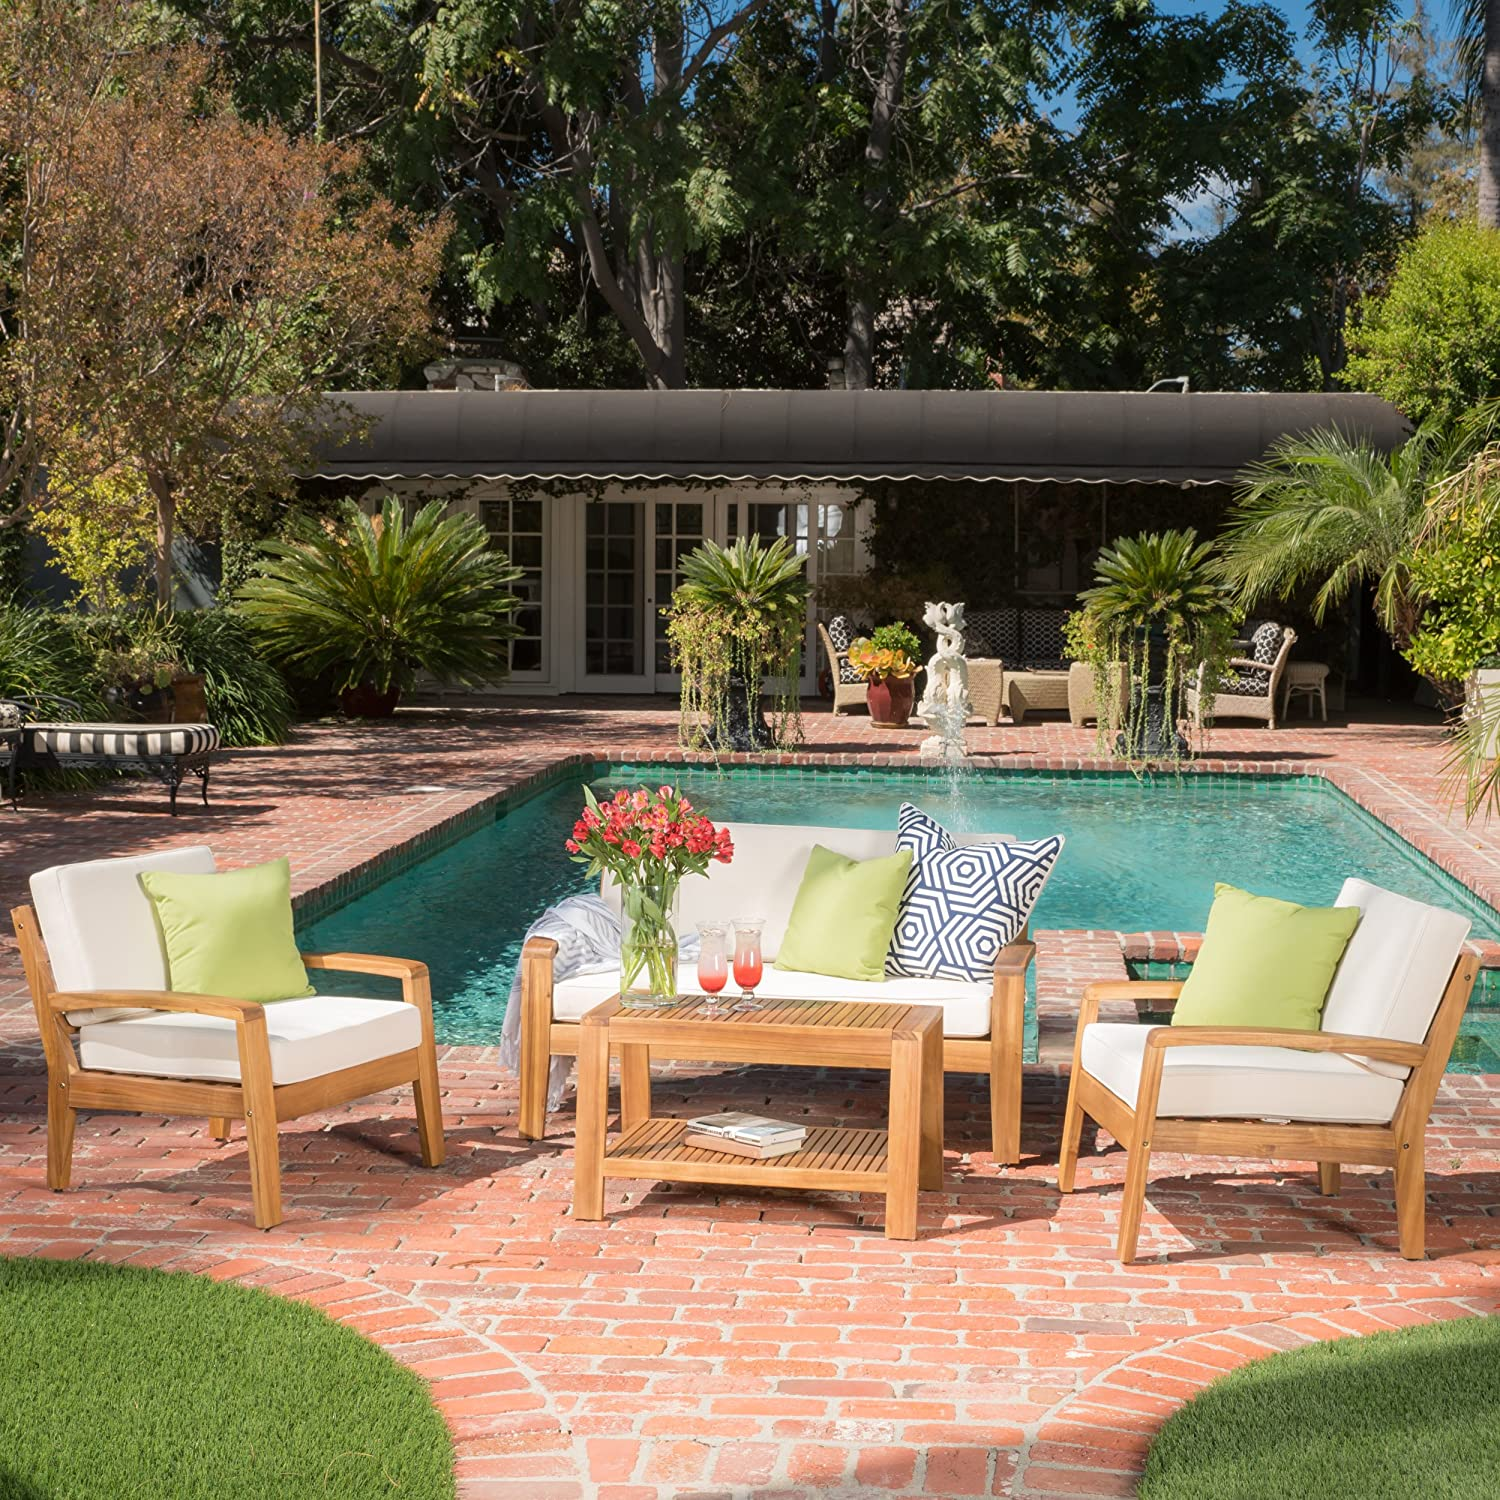 Parma 4 Piece Outdoor Wood Patio Furniture Chat Set w/Water Resistant Cushions (Four Piece Chat Set, Beige)